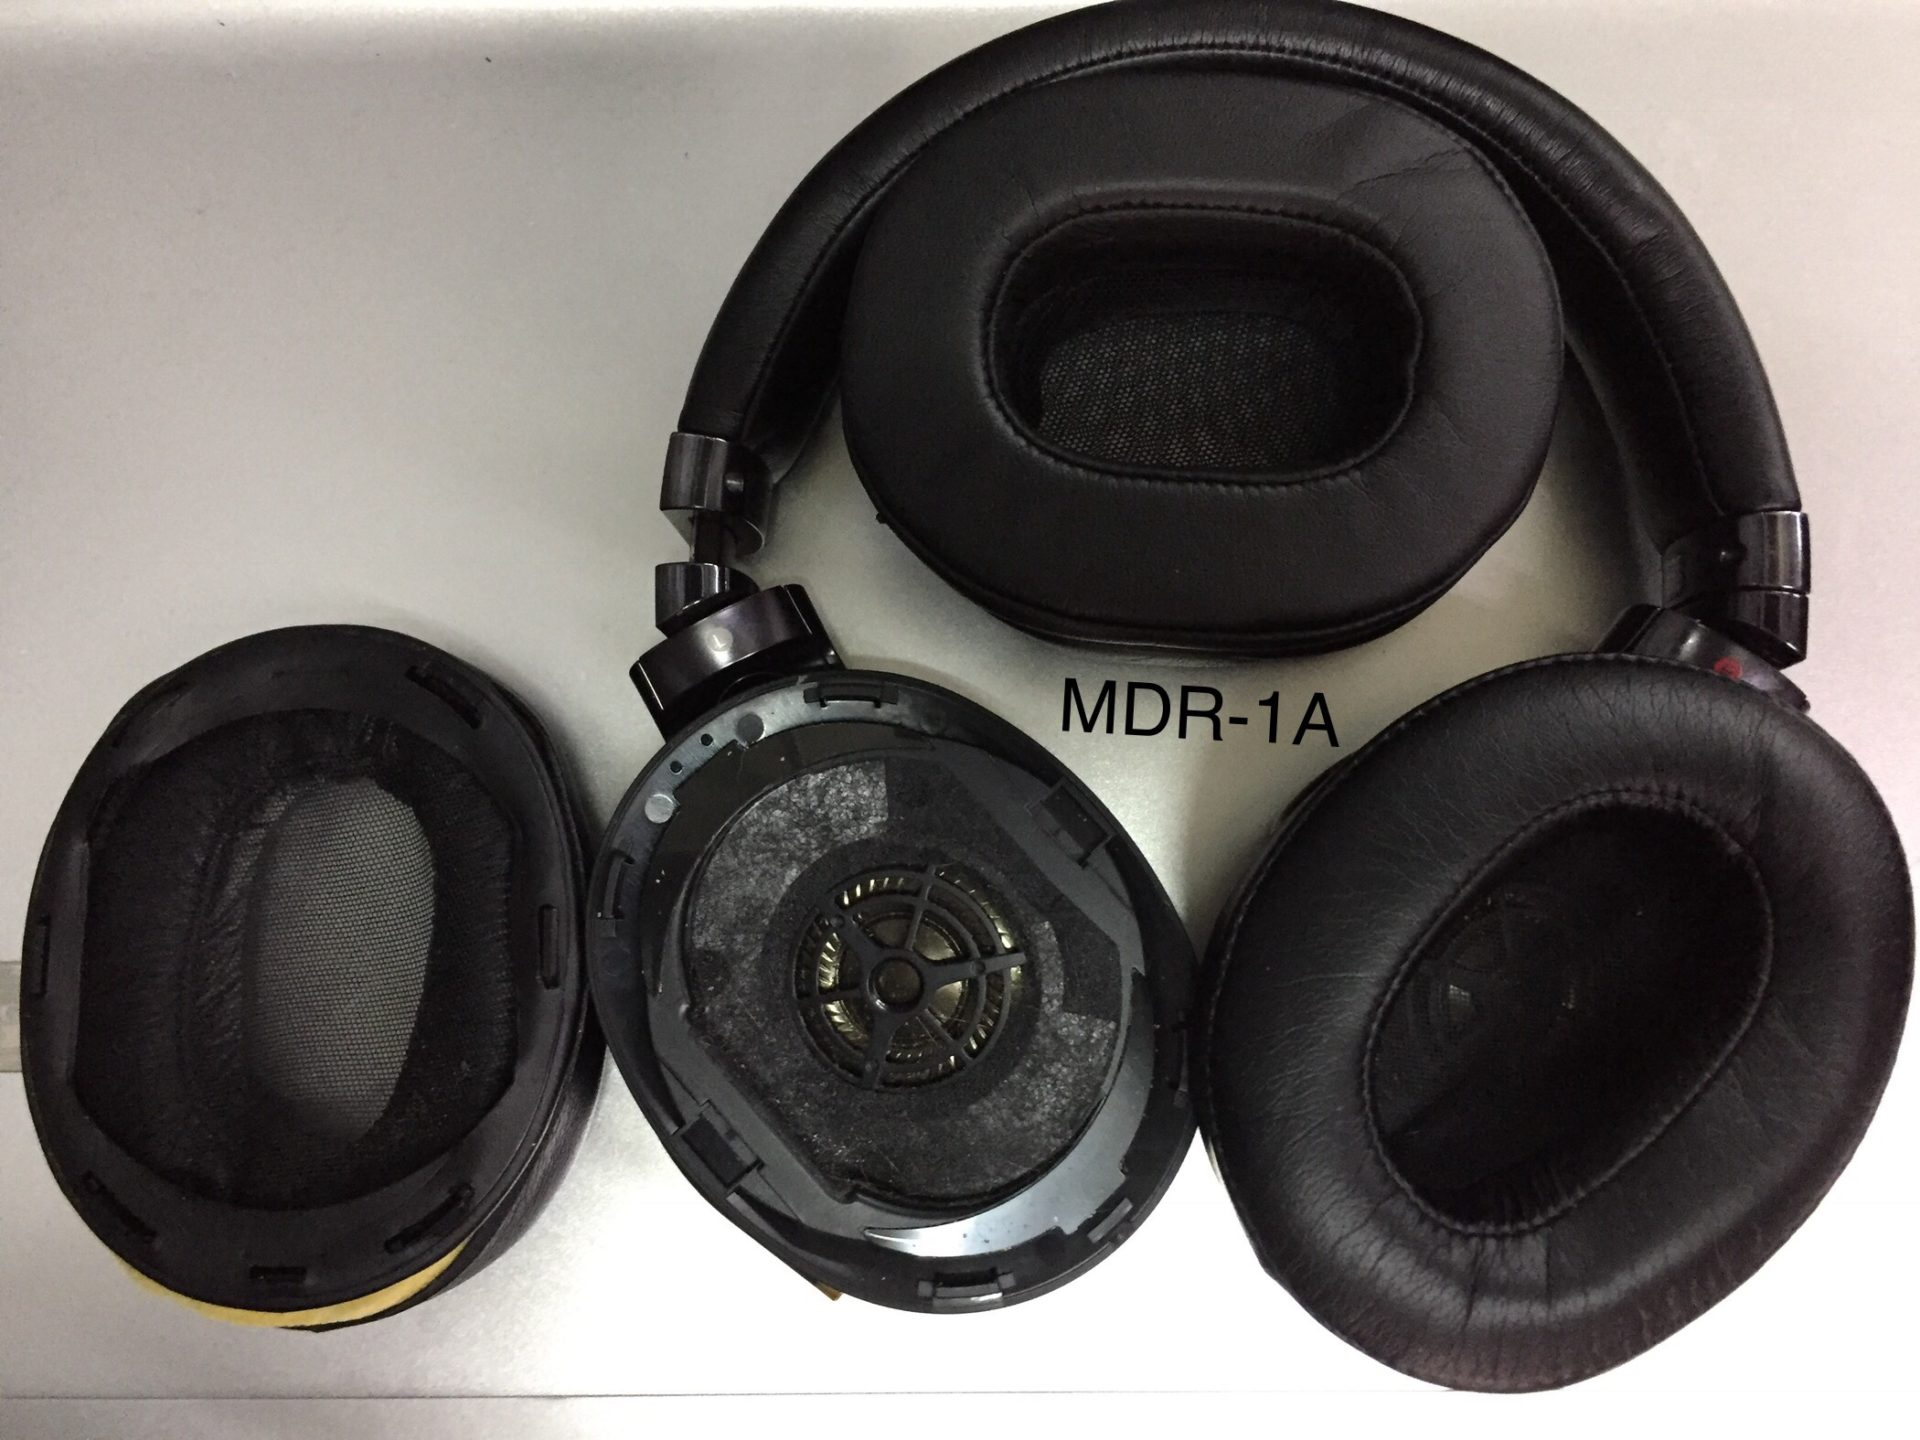 Sony MDR-1A и замена амбушюр